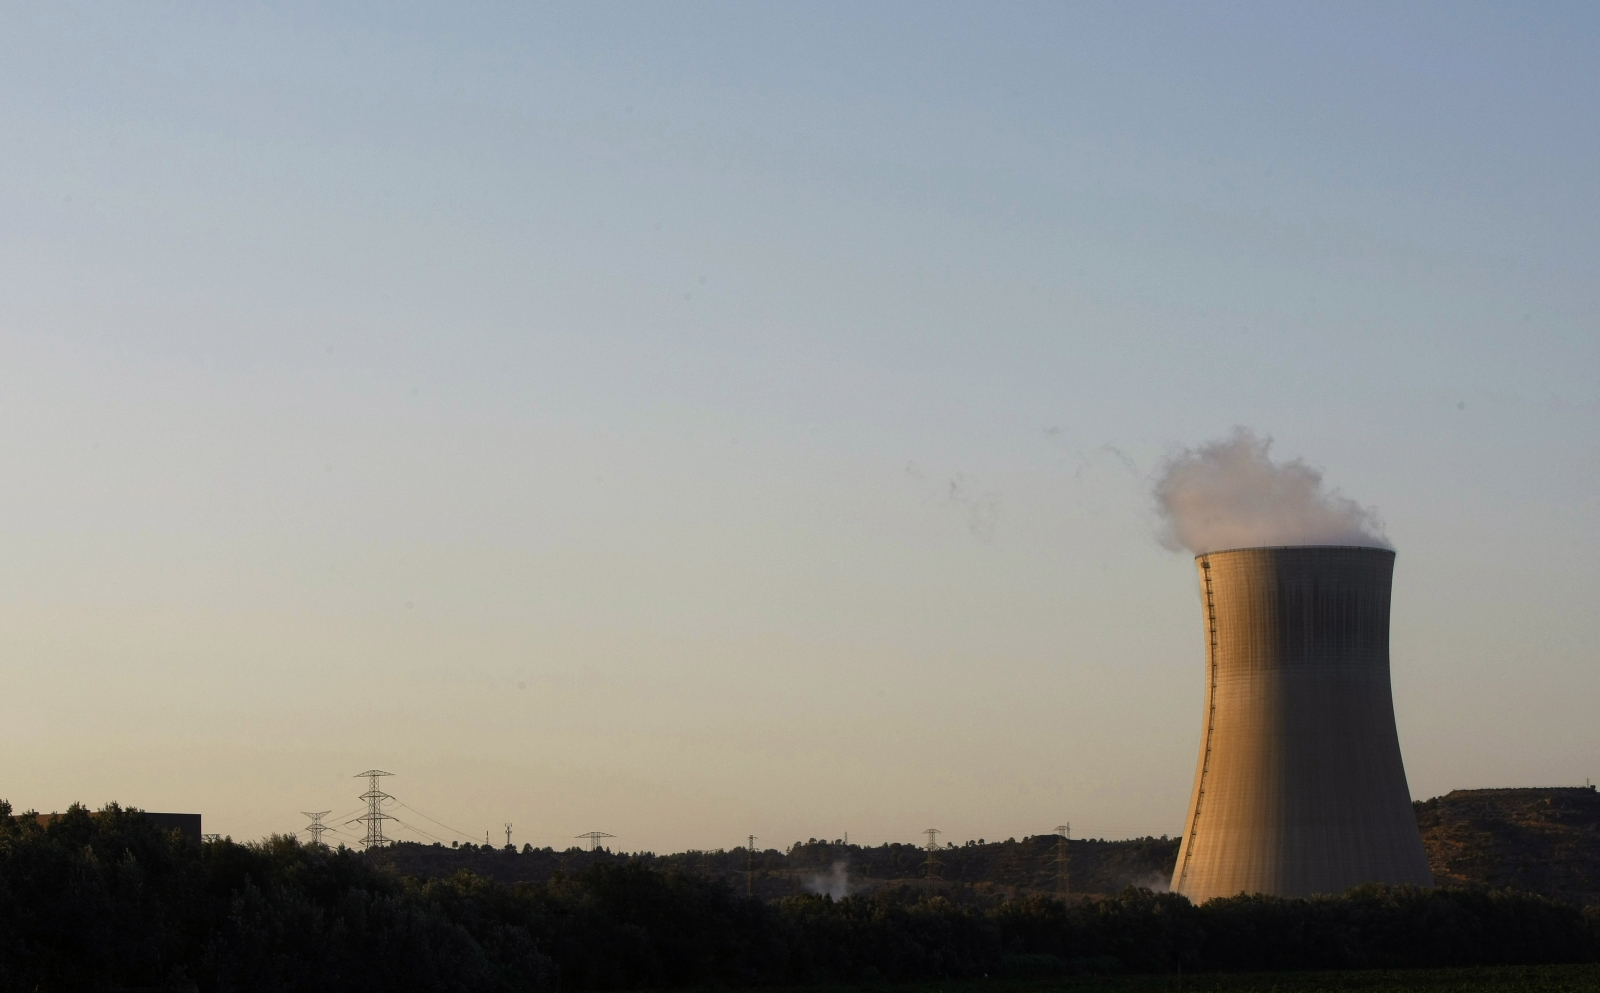 Hitachi, Bechtel and JGC team up to build new £10bn nuclear power station in Wales